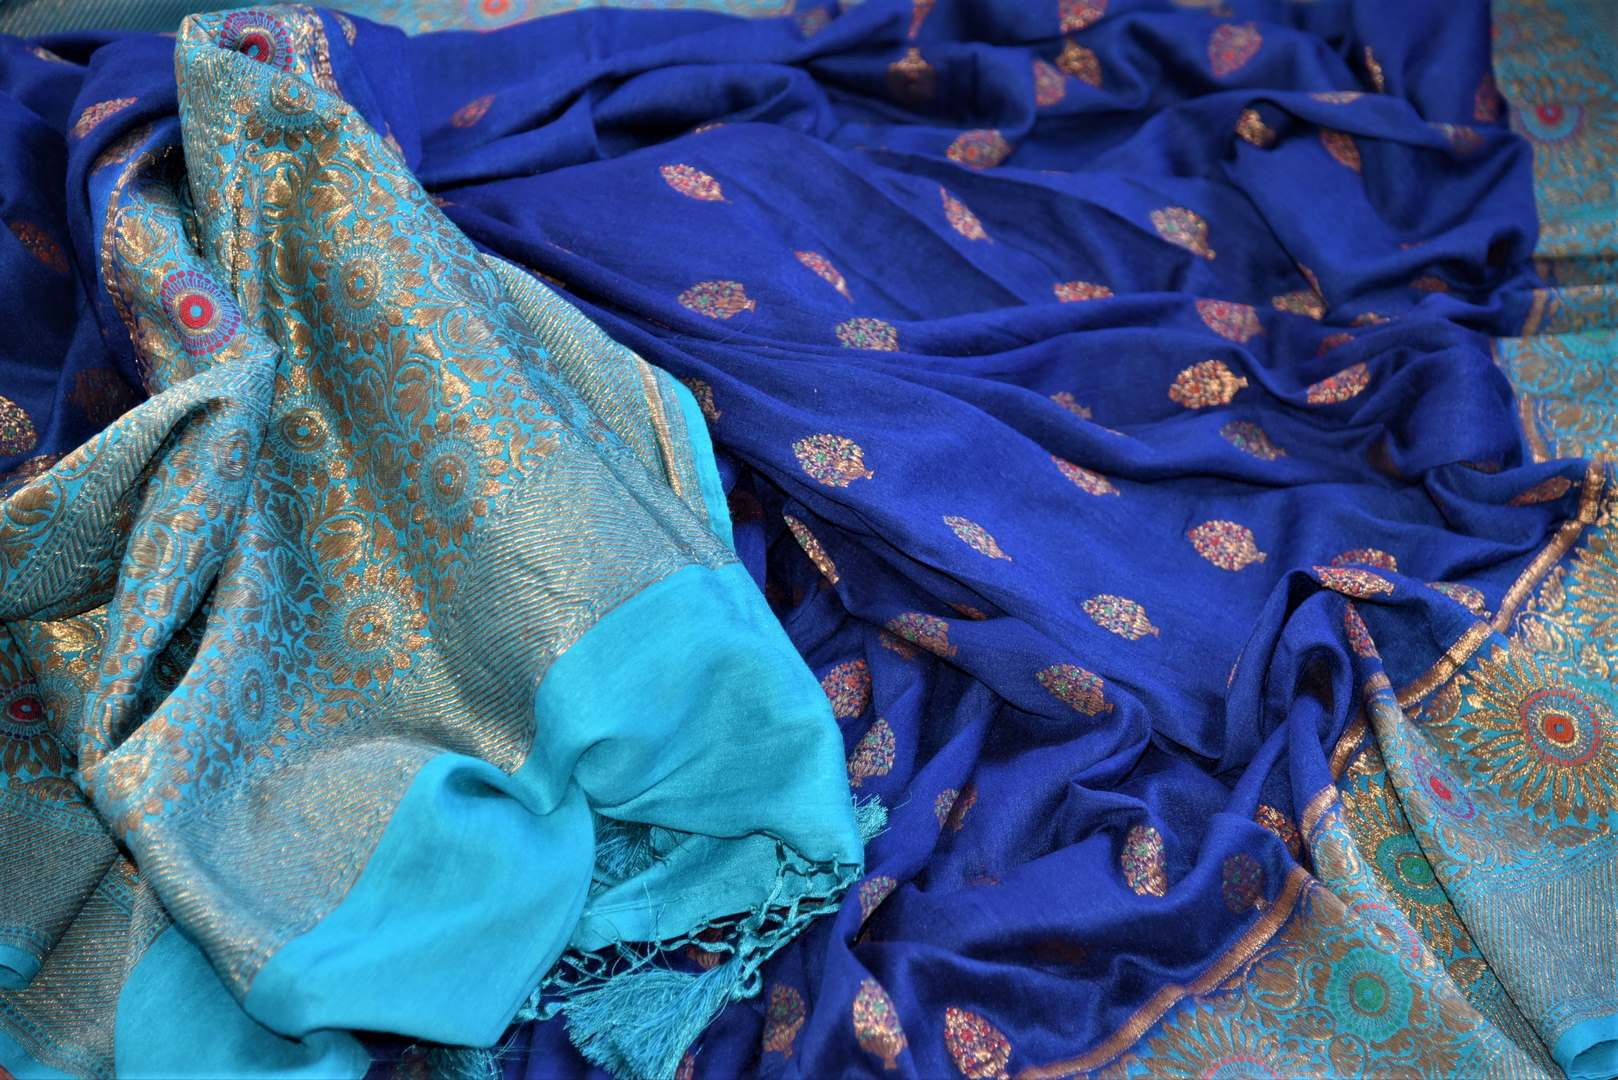 Shop indigo muga Banarasi sari online in USA with antique zari minakari blue border and buta. Be a vision of tradition and elegance on weddings and festivals with exquisite Banarasi silk sarees, muga silk sarees, handwoven sarees from Pure Elegance Indian clothing store in USA.-details